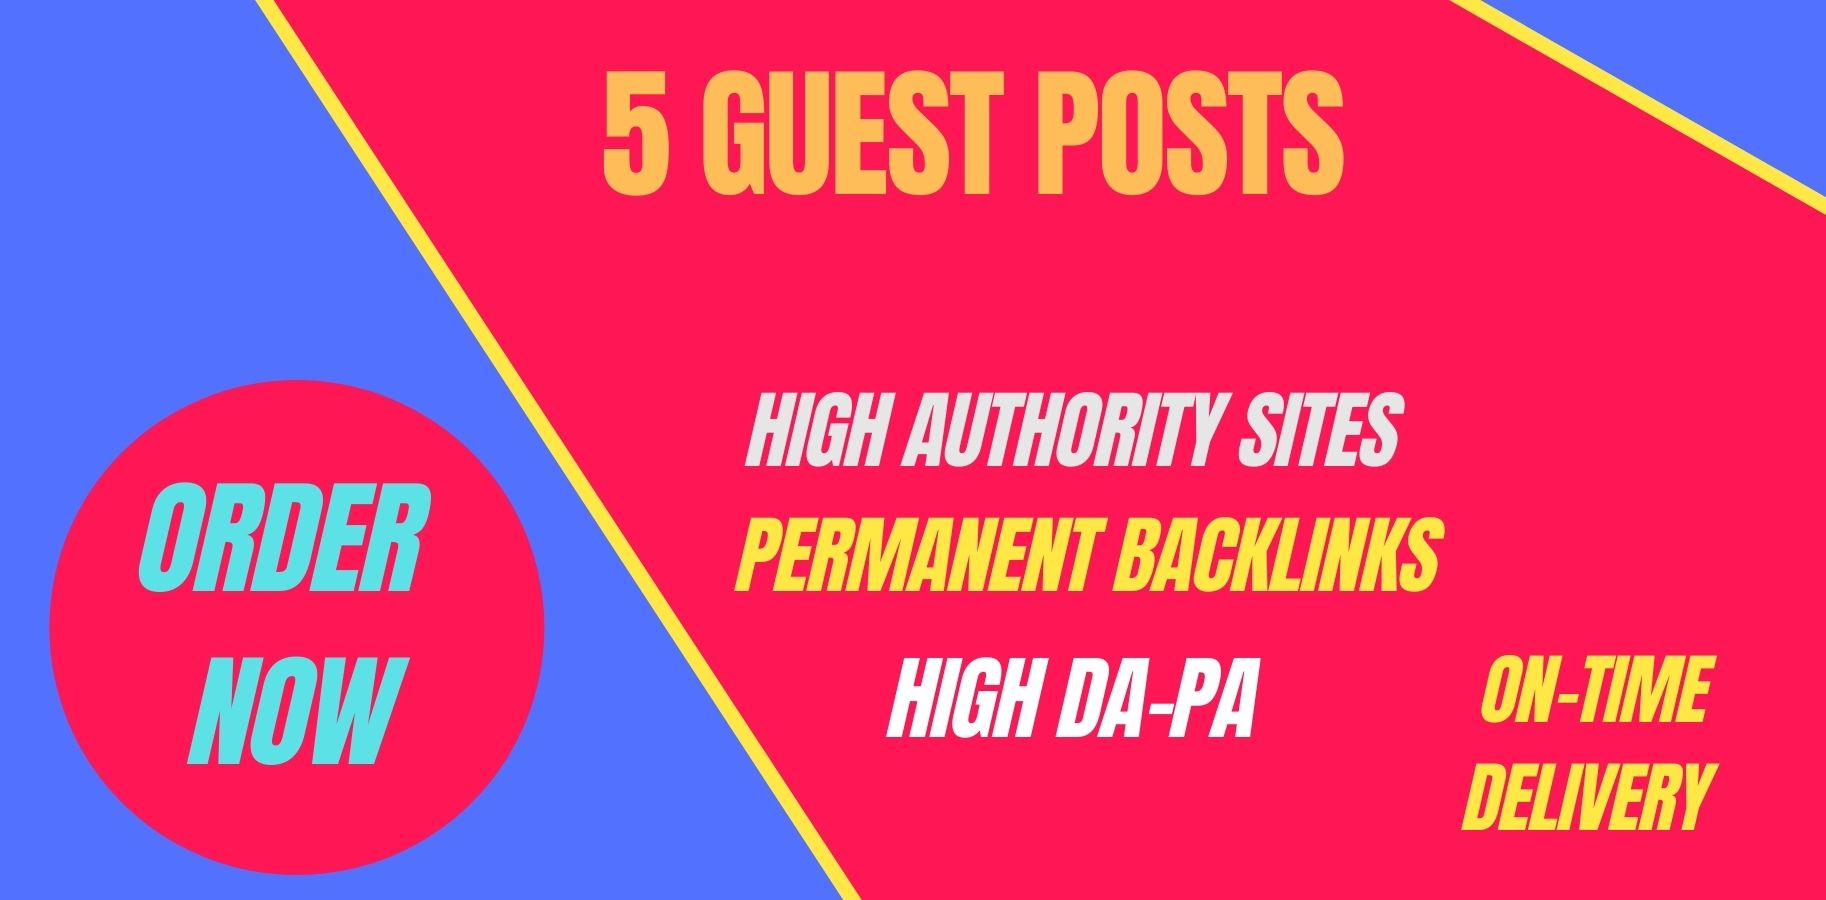 I will write and publish 5 guest posts on high DA PA sites